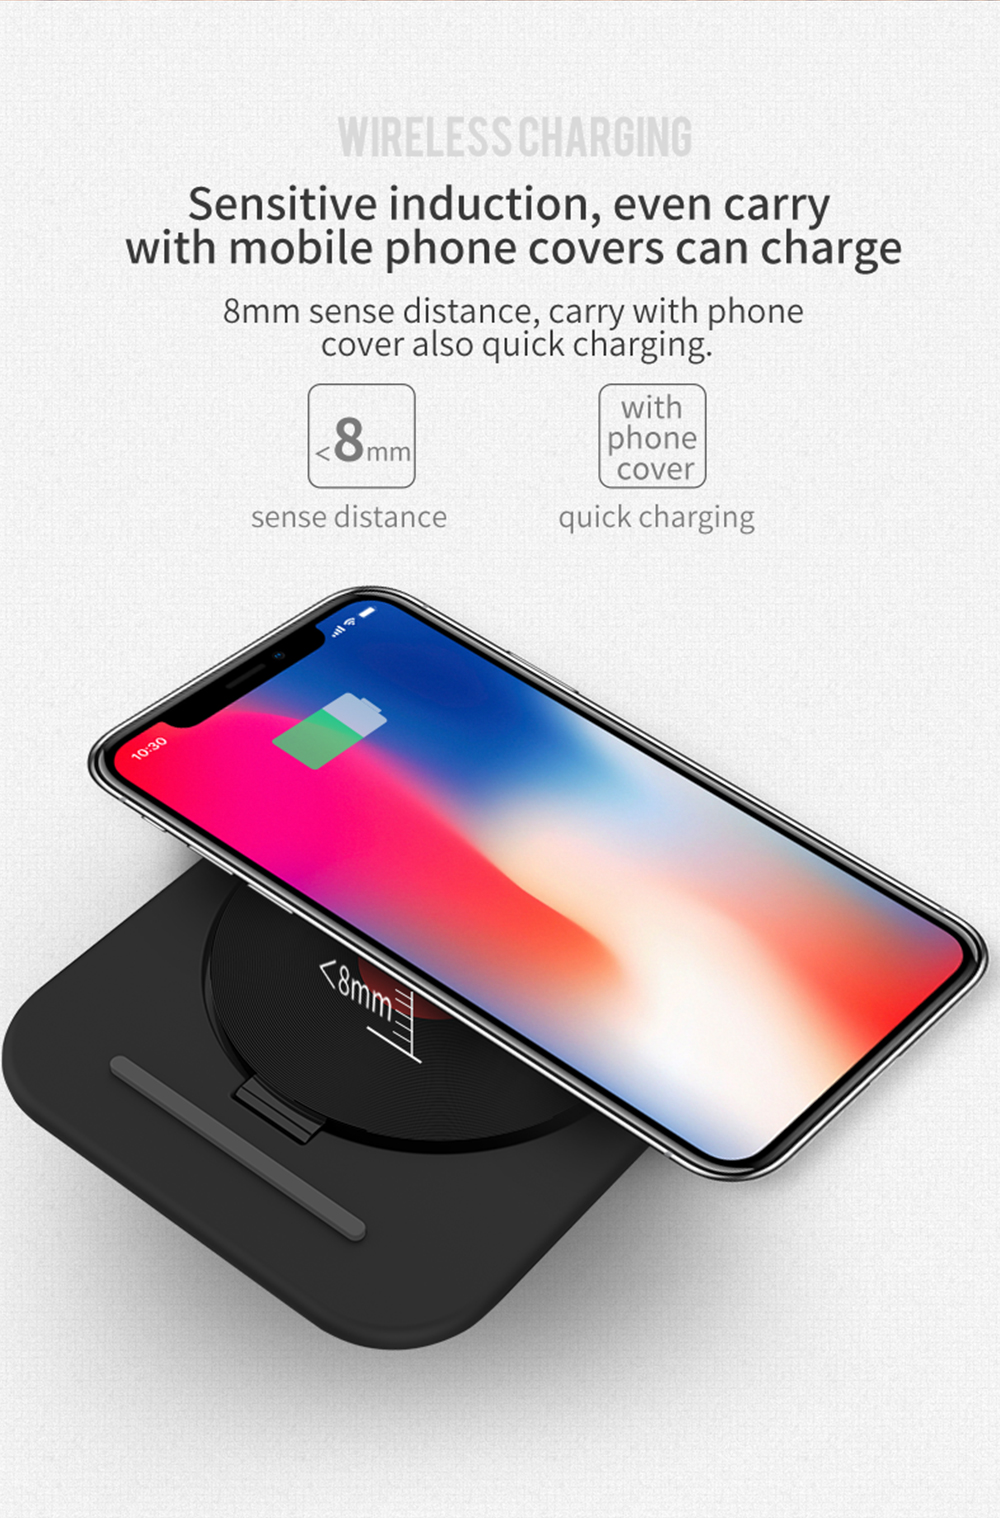 Bakeey 10W 7.5W 5W Foldable Wireless Charger Charging Pad For iPhone XS MAX XR 8 Note 9 Xiaomi Mix 3